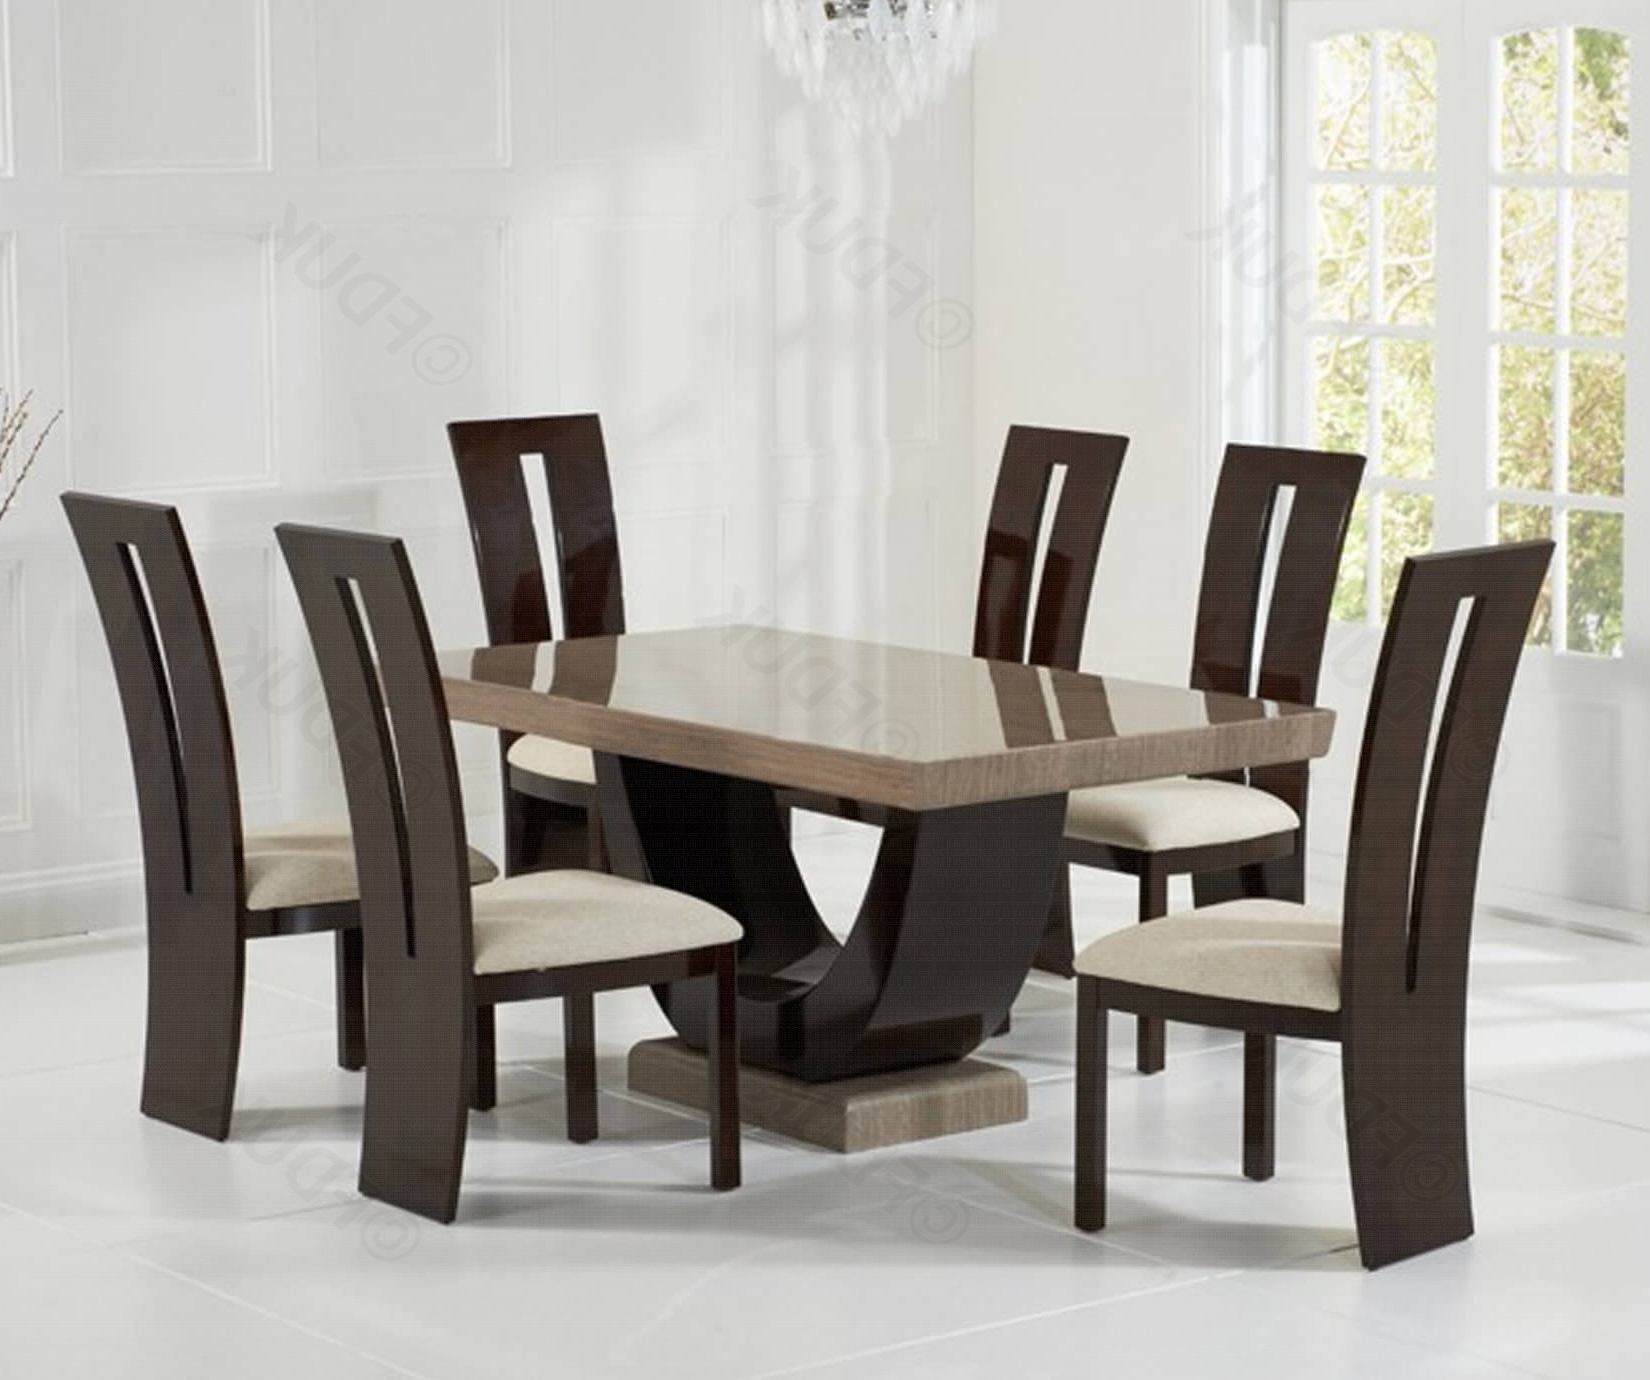 Brown Constituted Marble Dining Set With 6 Pertaining To Marble Dining Chairs (View 4 of 25)